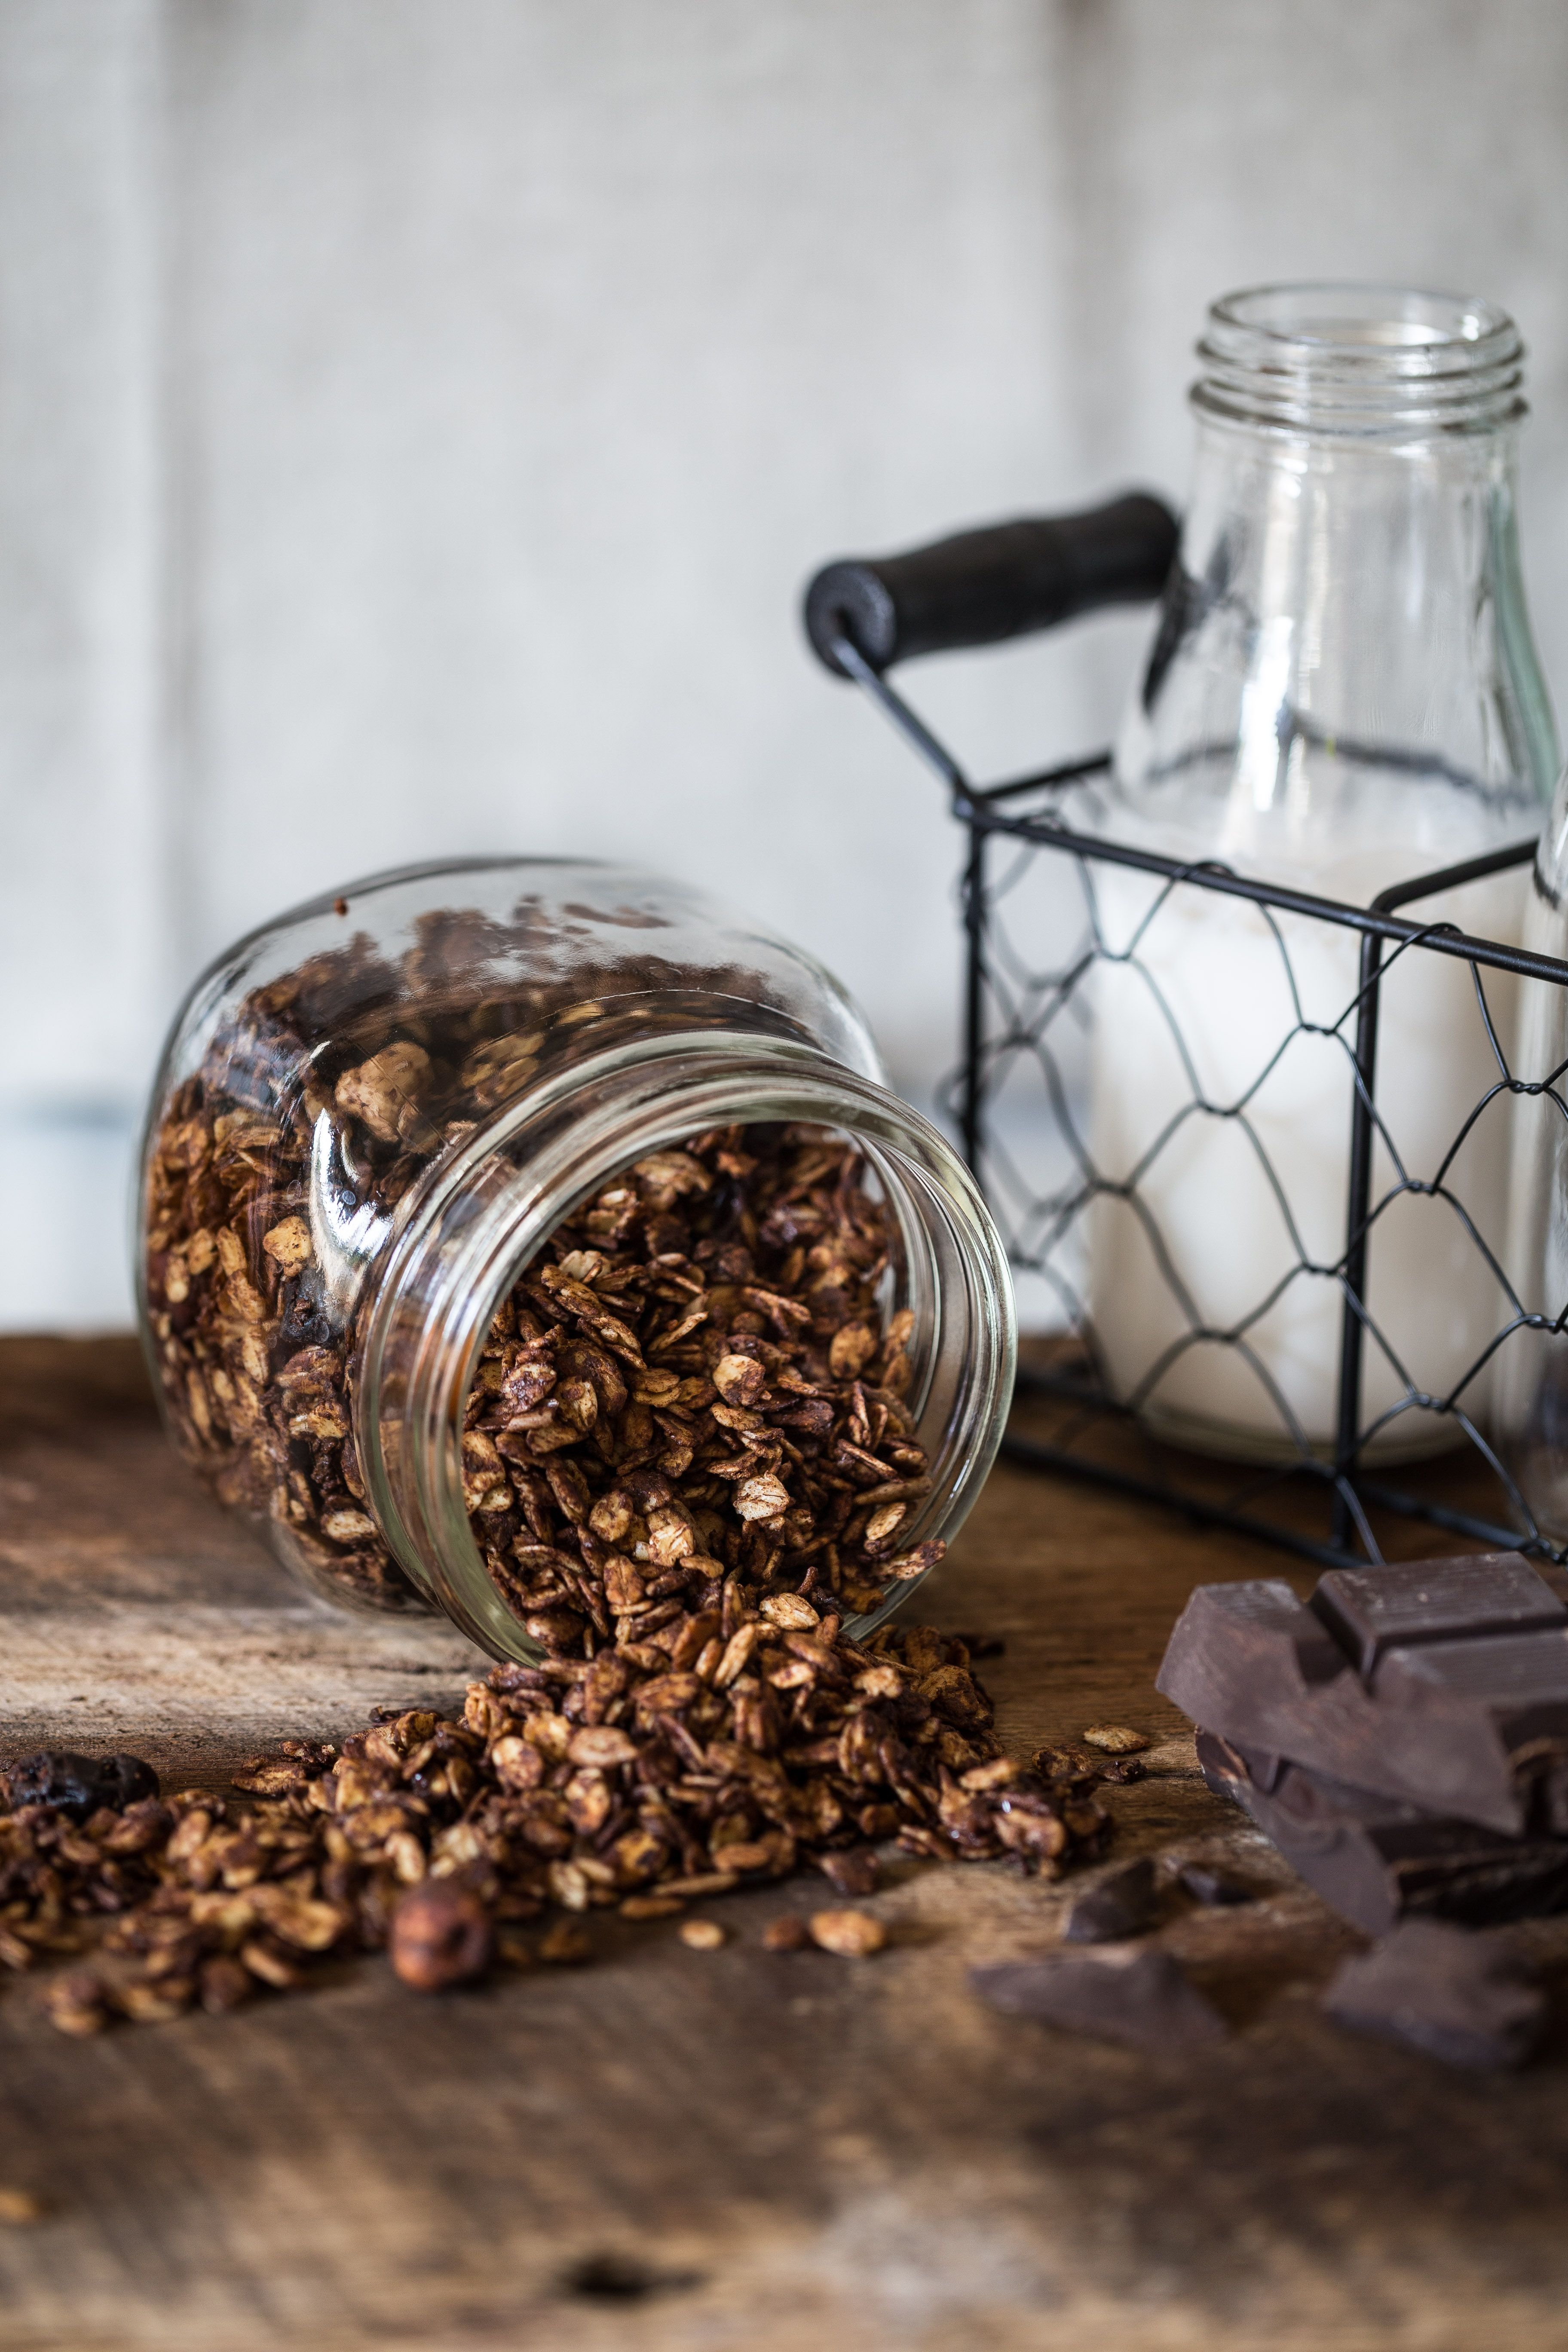 I love making granola and ever since I started a few years back I have never looked back. Store bought brands are way too expensive and varieties are made with tons of sugar and basically just oats. This pumpkin chocolate granola has become one of my favorites granola recipes of all times!